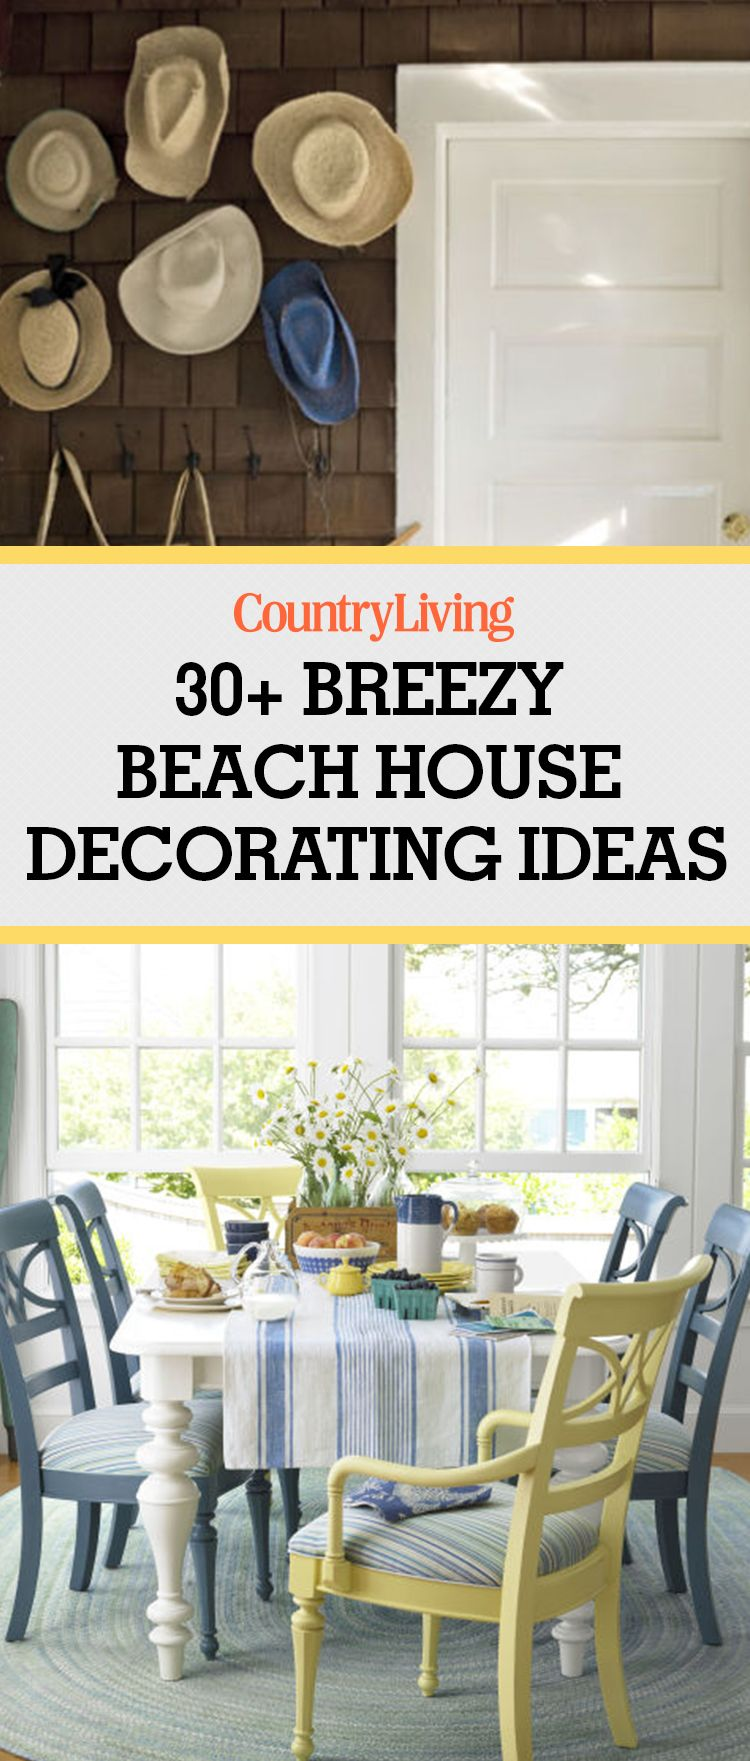 Ideas For Decorating A Home Part - 42: Country Living Magazine